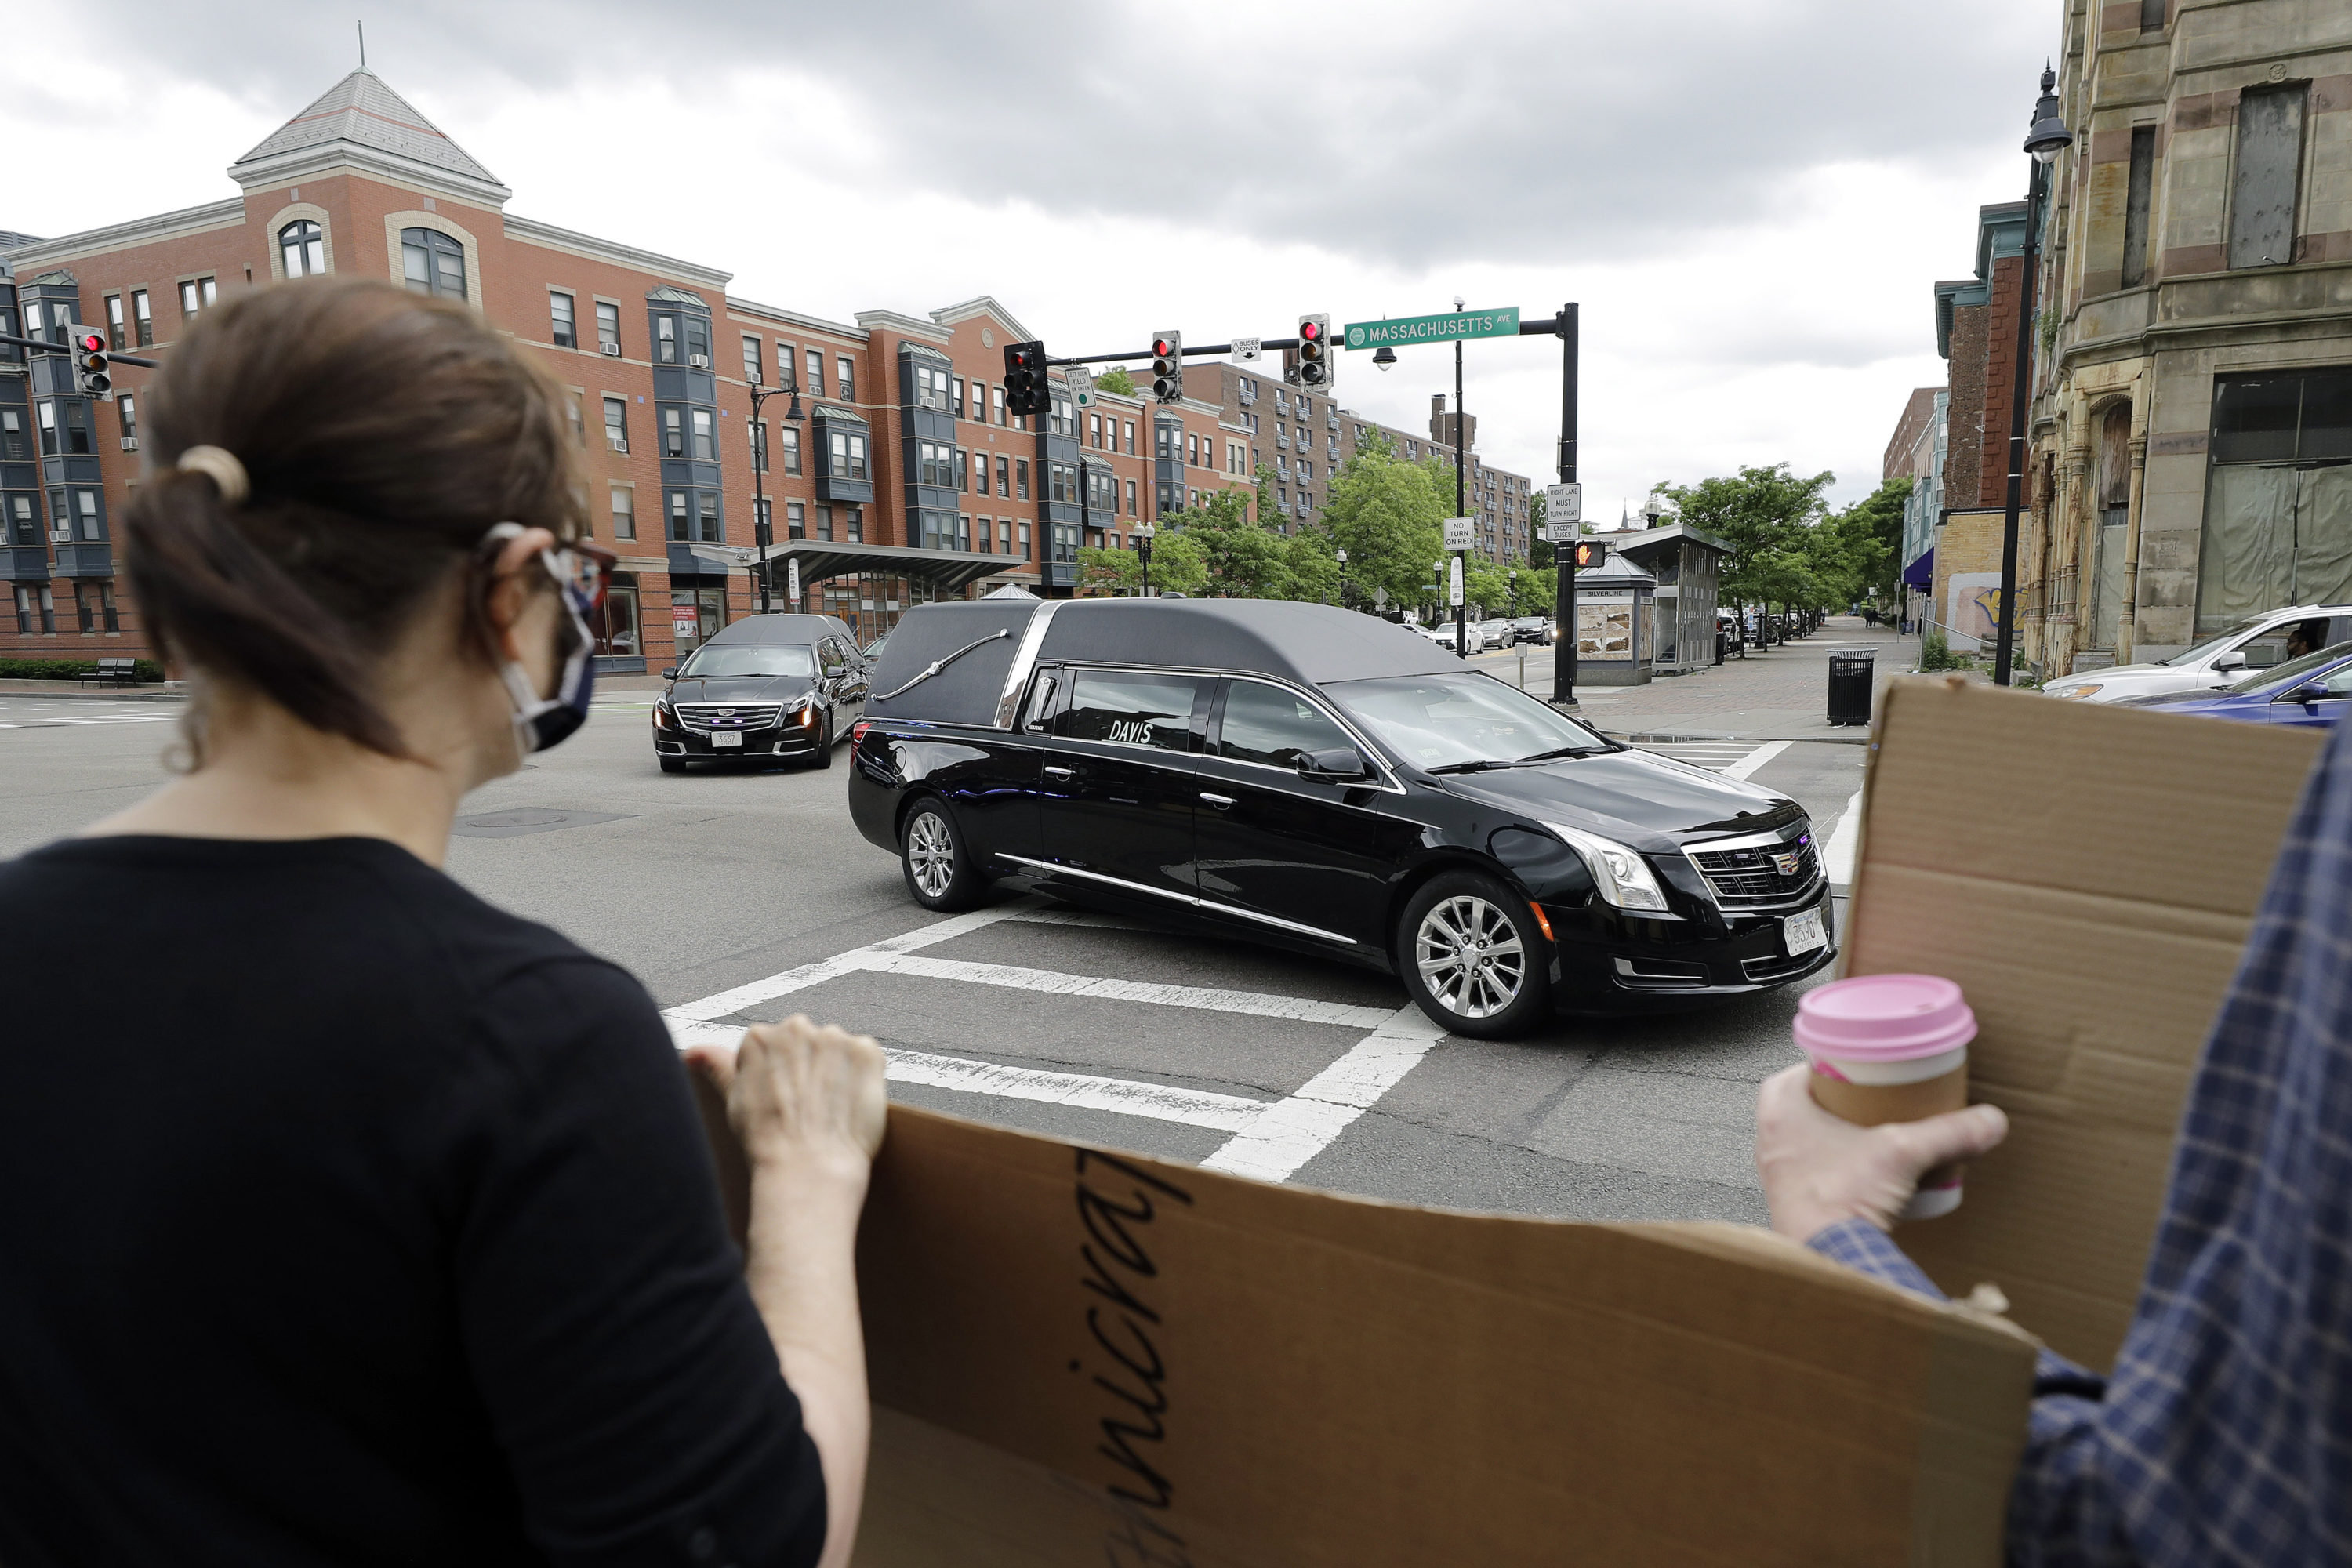 People display placards Sunday while watching a procession of vehicles, including three hearses meant to honor fallen George Floyd, Breonna Taylor and Ahmaud Arbery, as it makes its way through Boston. (Steven Senne/AP)